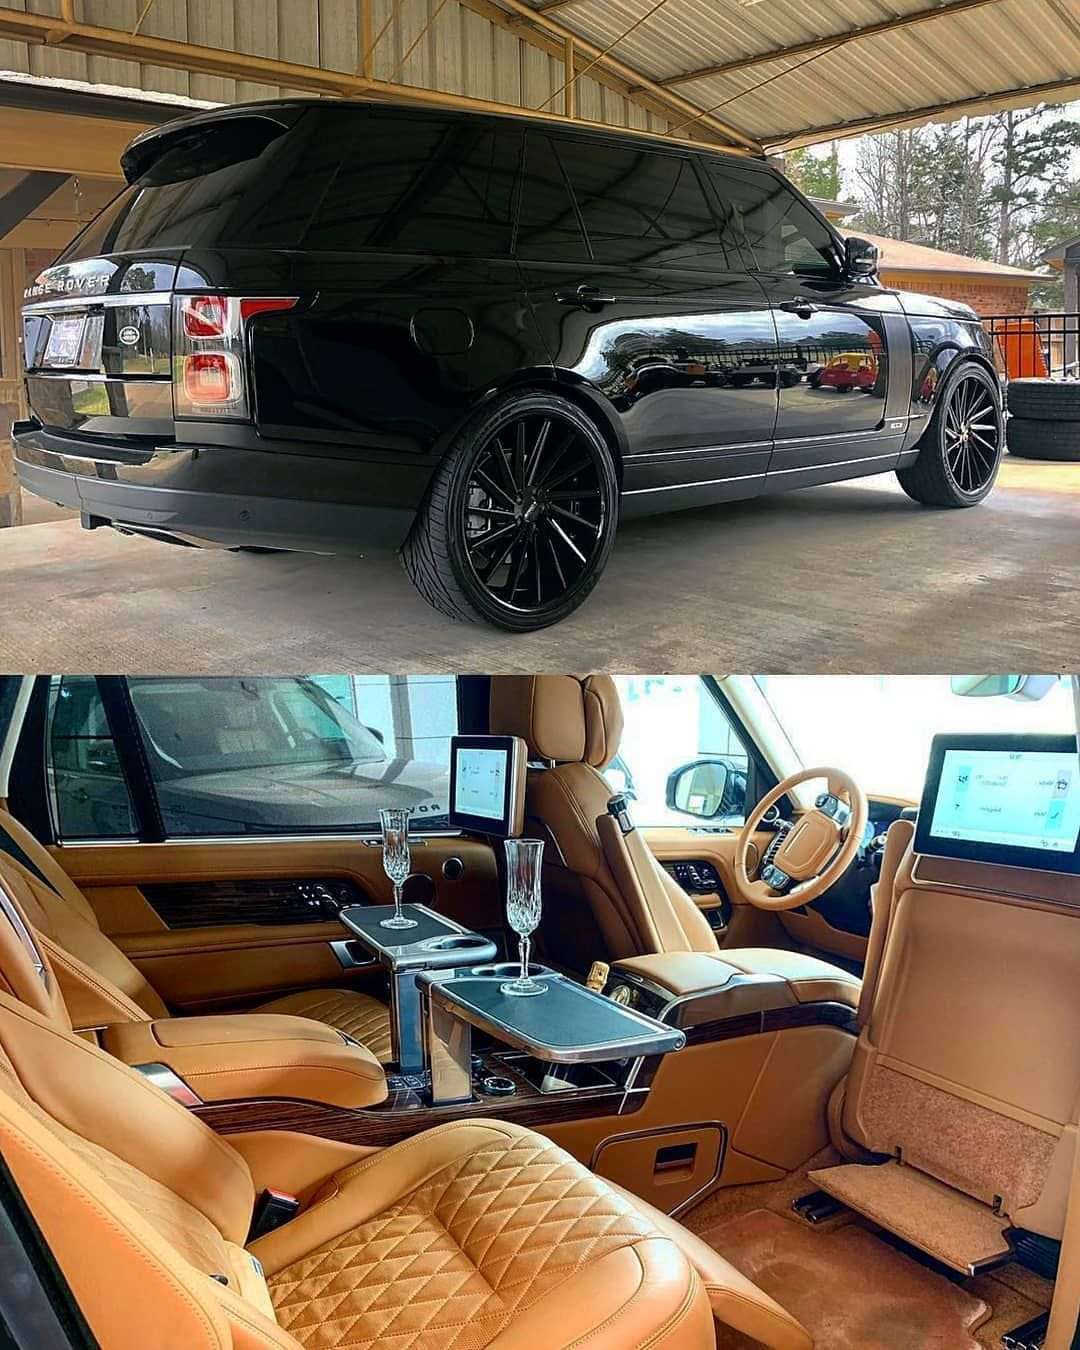 Range Rover Vogue LWB SVautobiography ? Follow @uber.luxury for more? Via: @high_boss_life – Carhoots